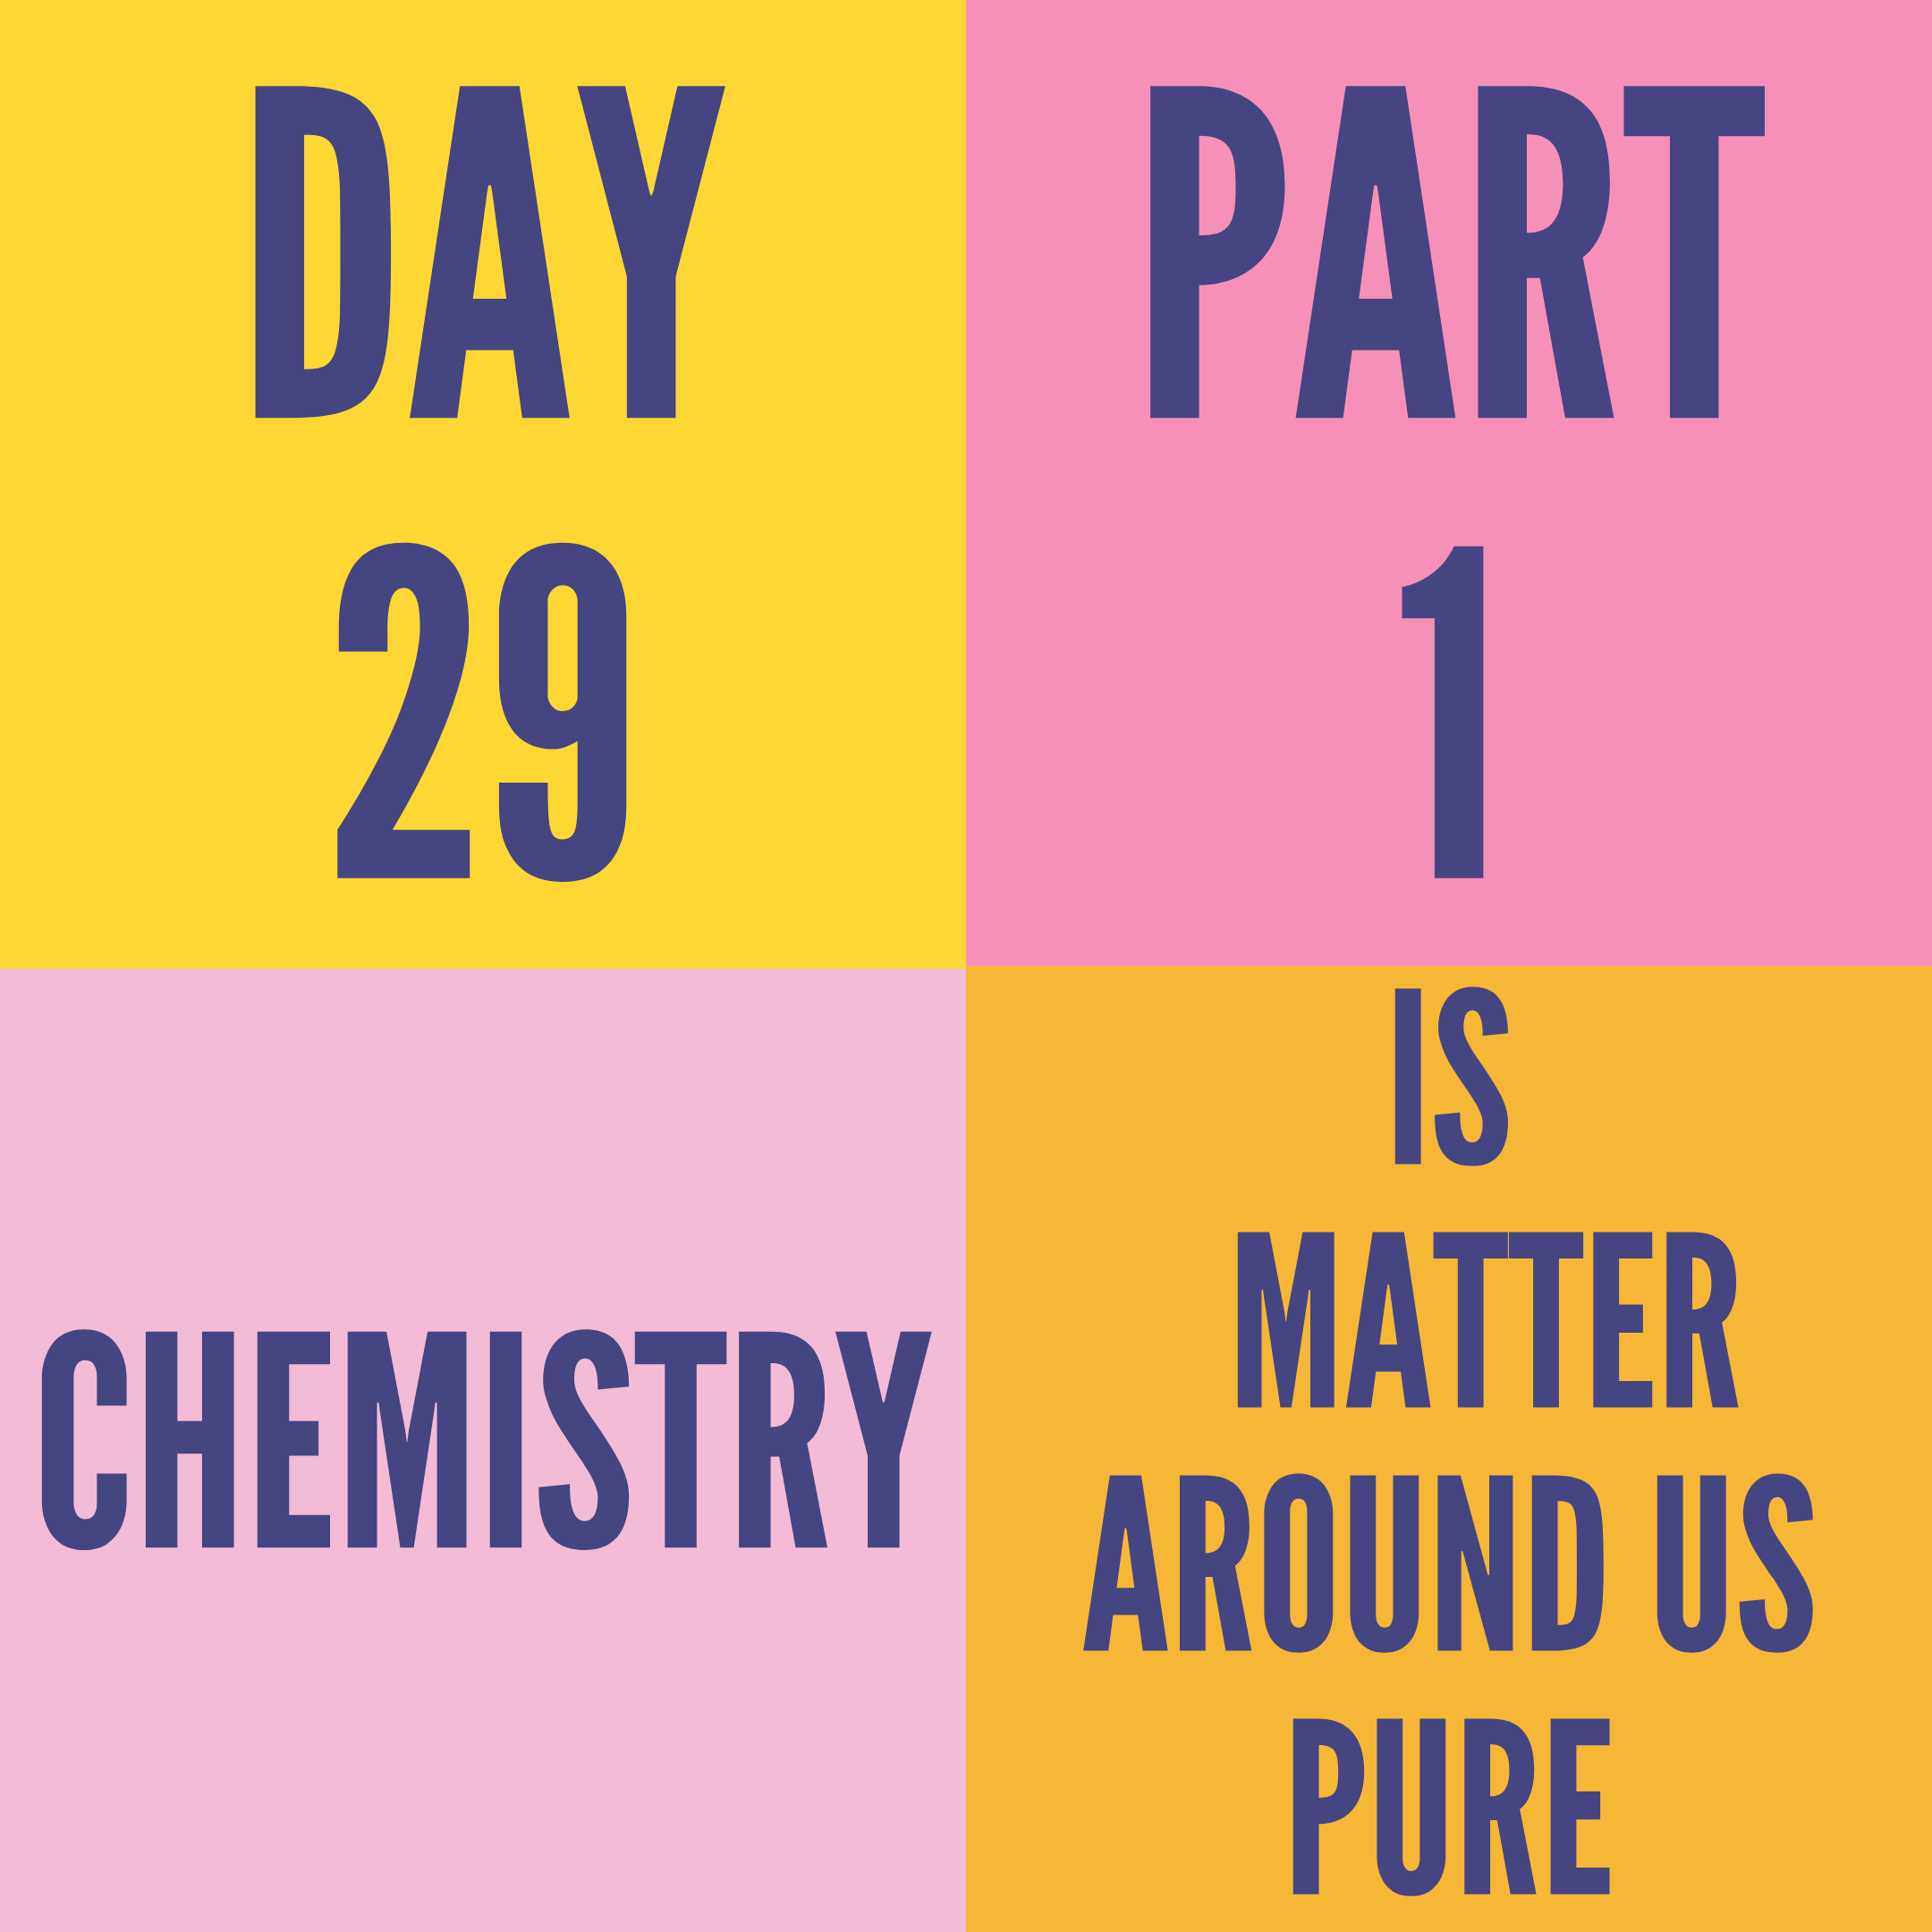 DAY-29 PART-1 IS MATTER AROUND US PURE